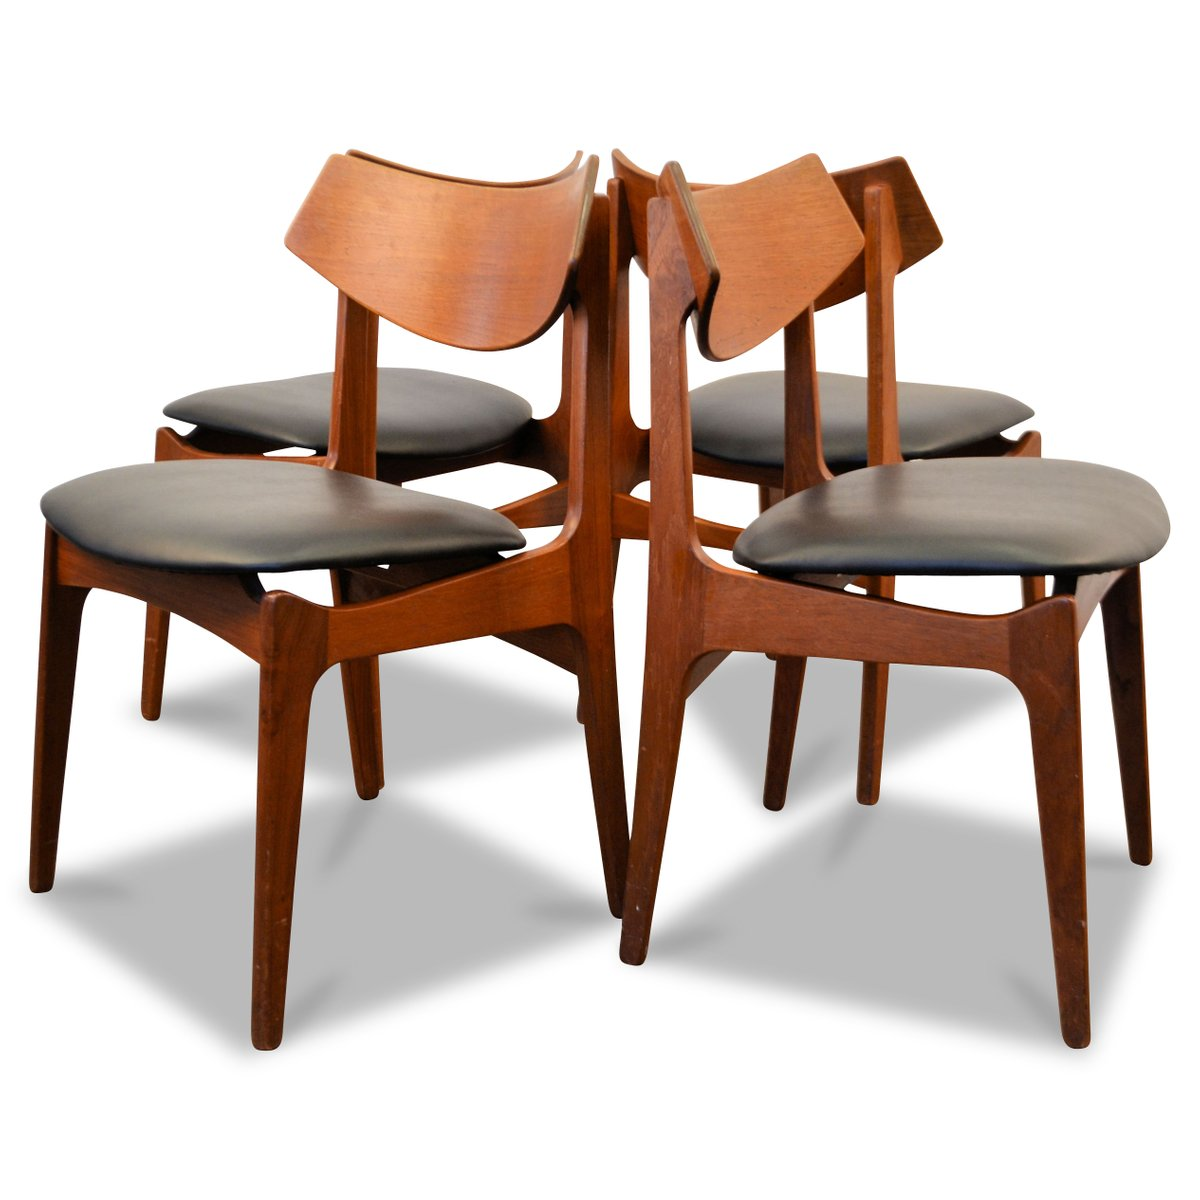 Danish Teak Dining Chairs Danish Teak Dining Chairs From Funder Schmidt And Madsen